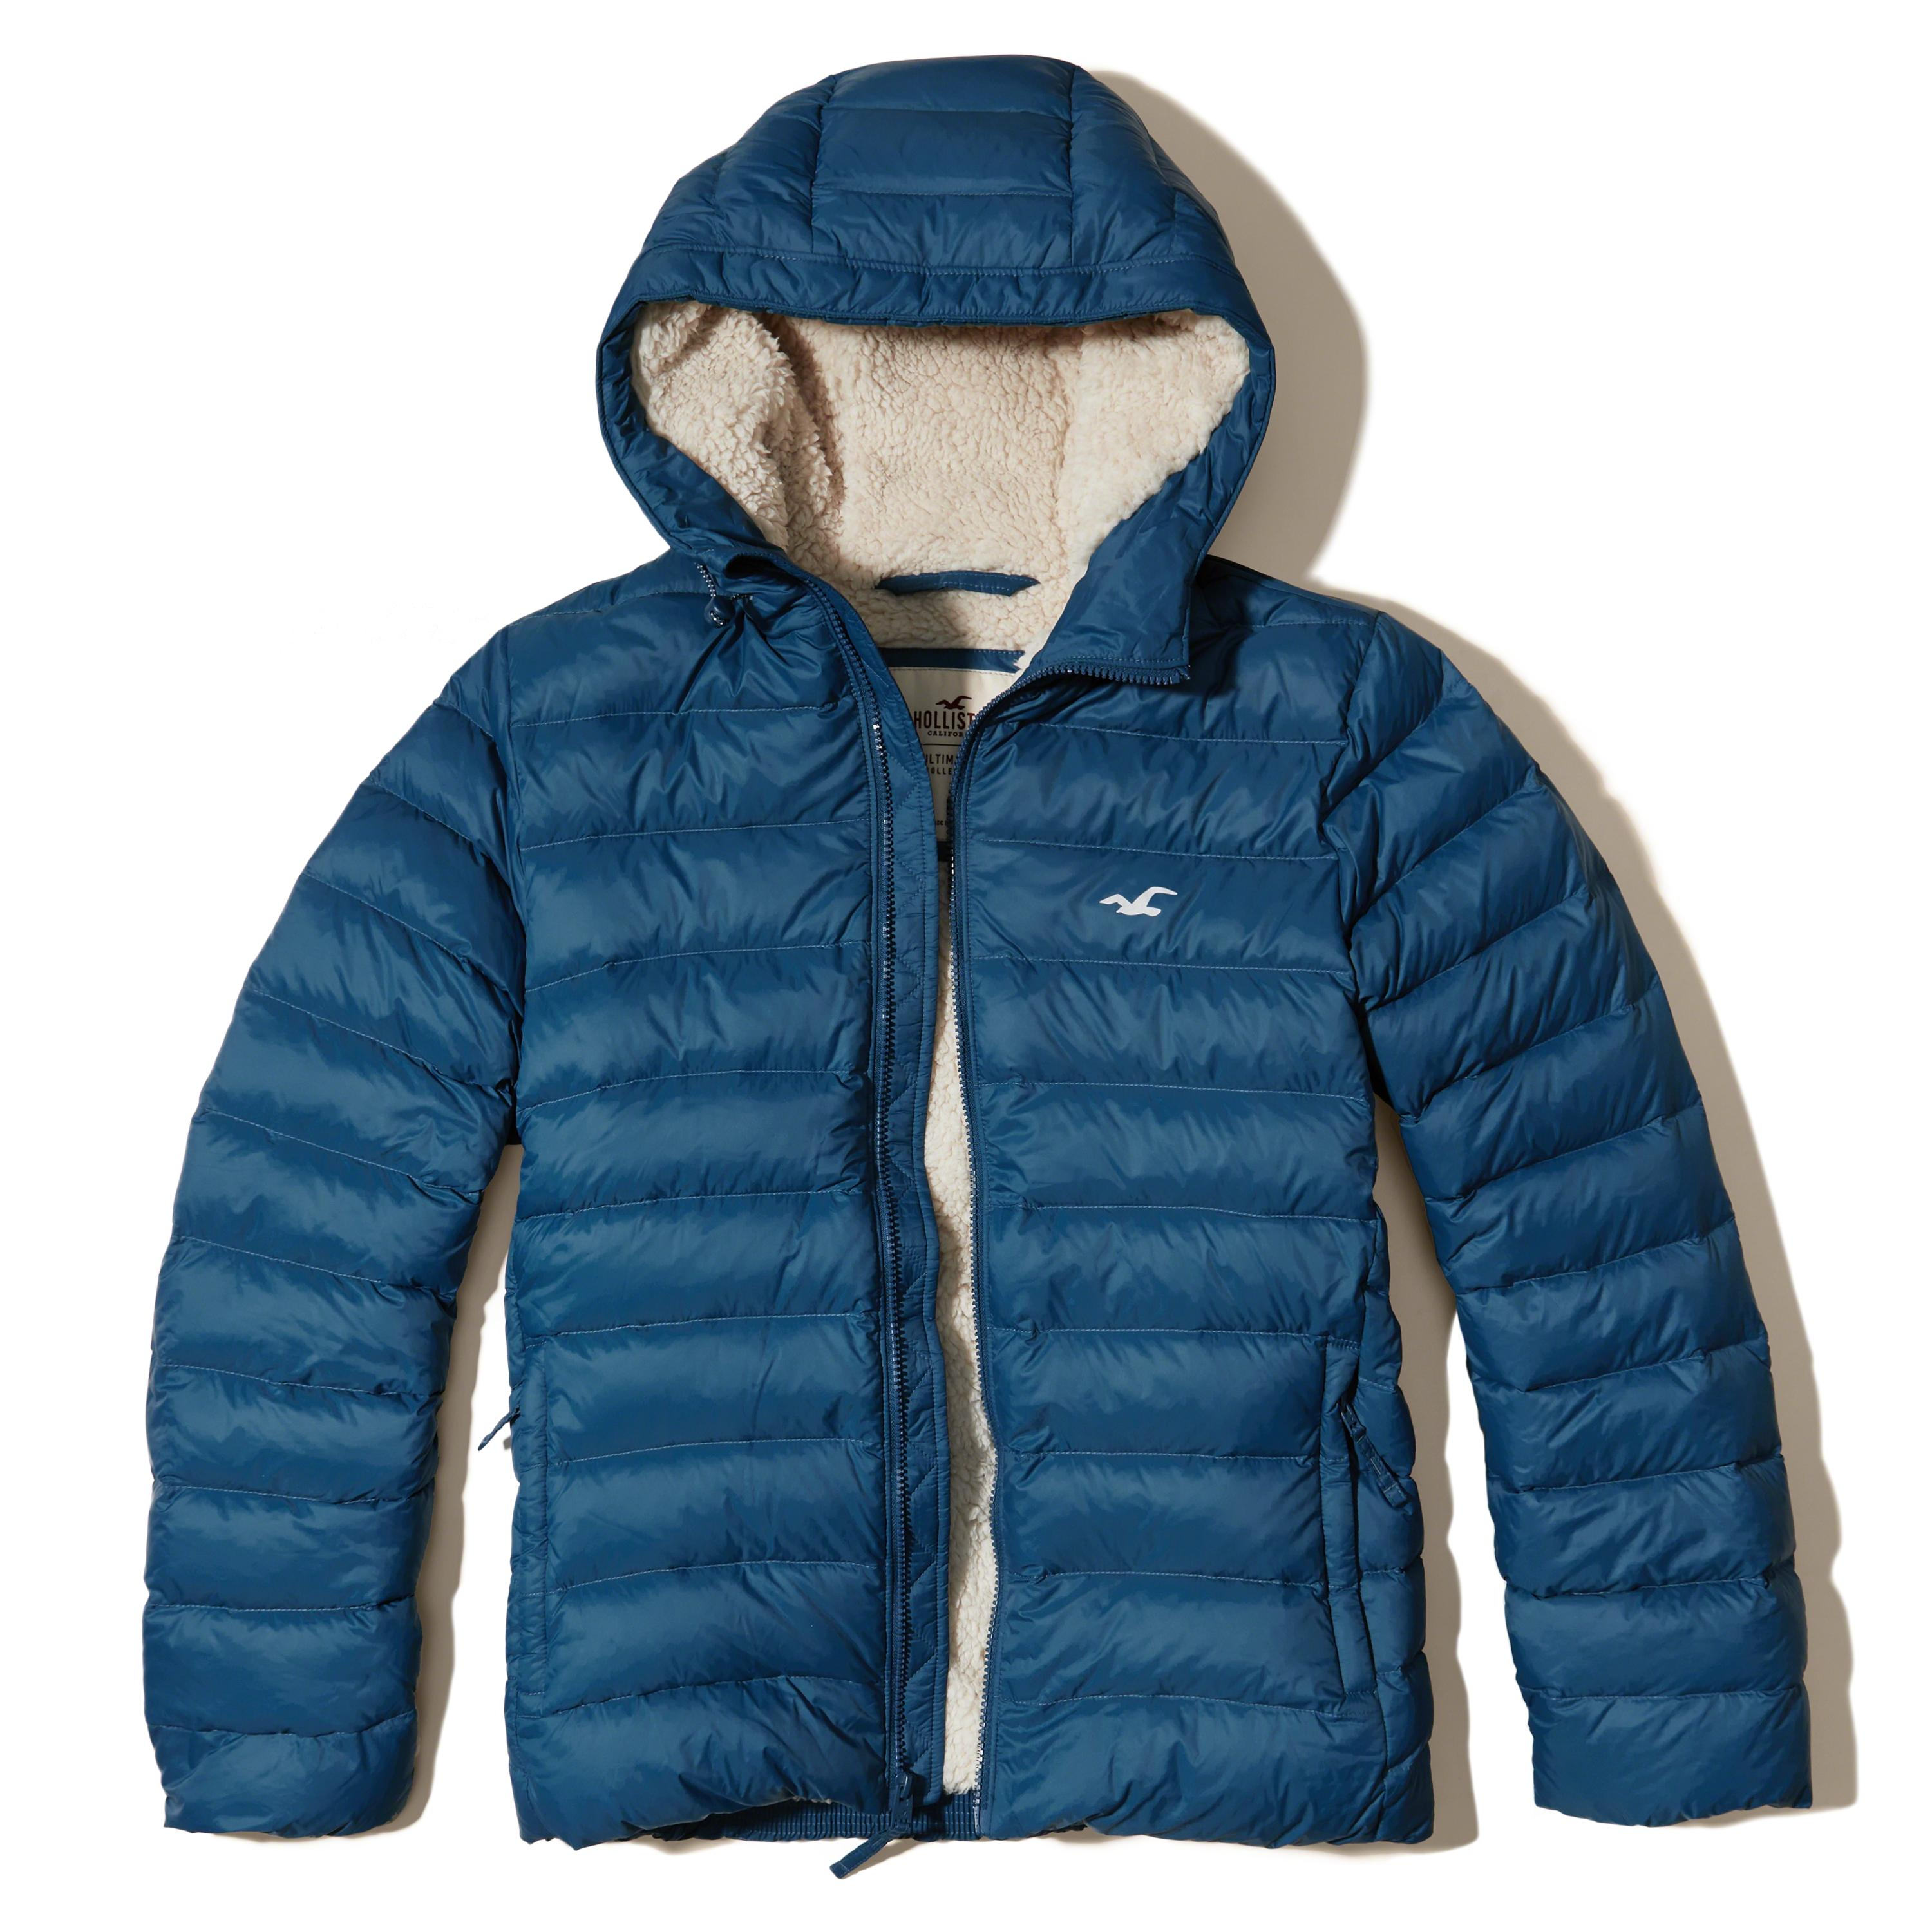 hollister sherpa lined down puffer jacket in blue for men